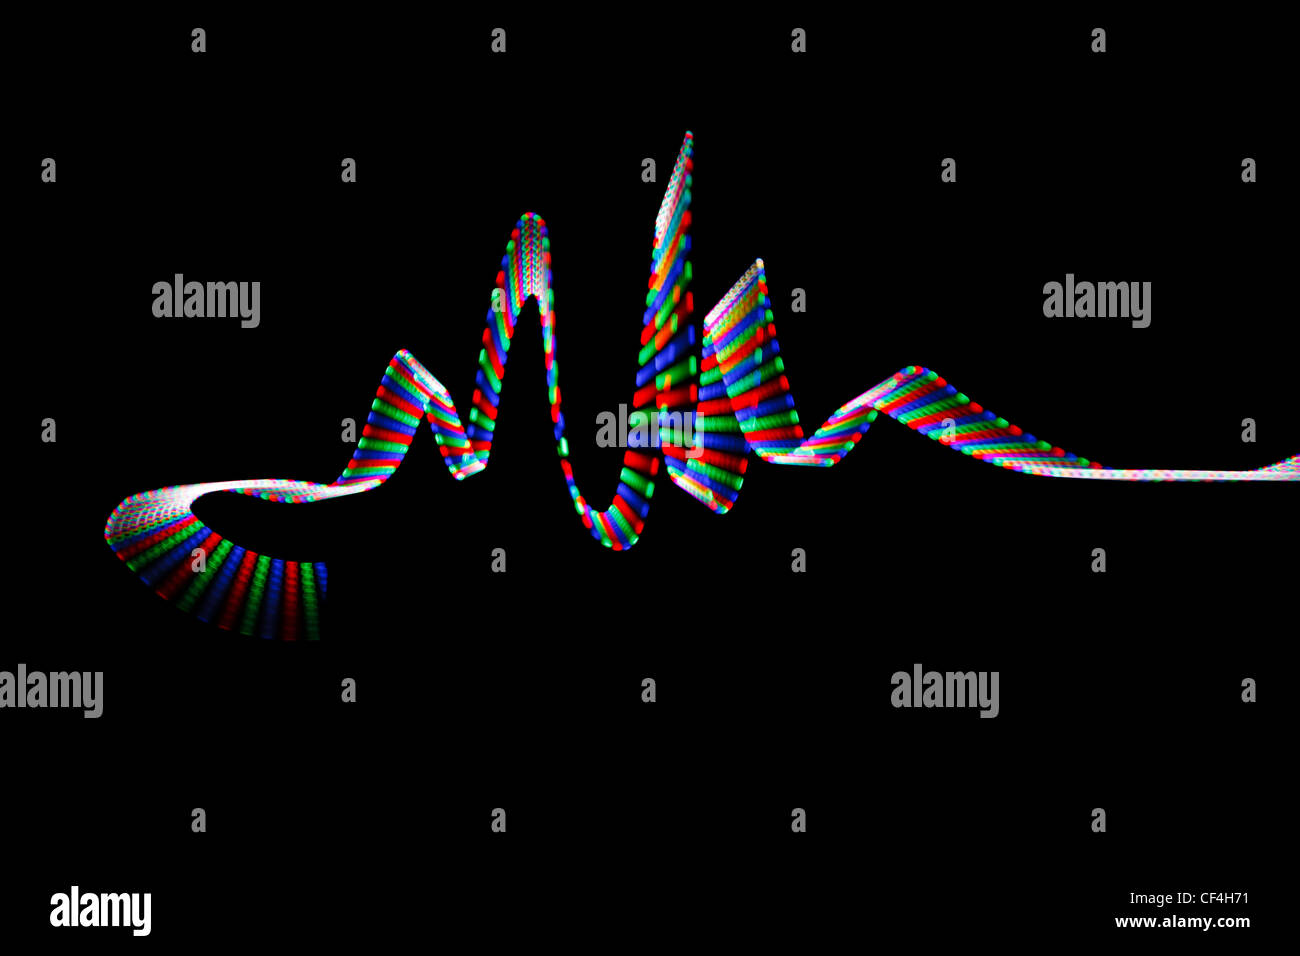 Colorful LED track, in form of waves on black background. - Stock Image